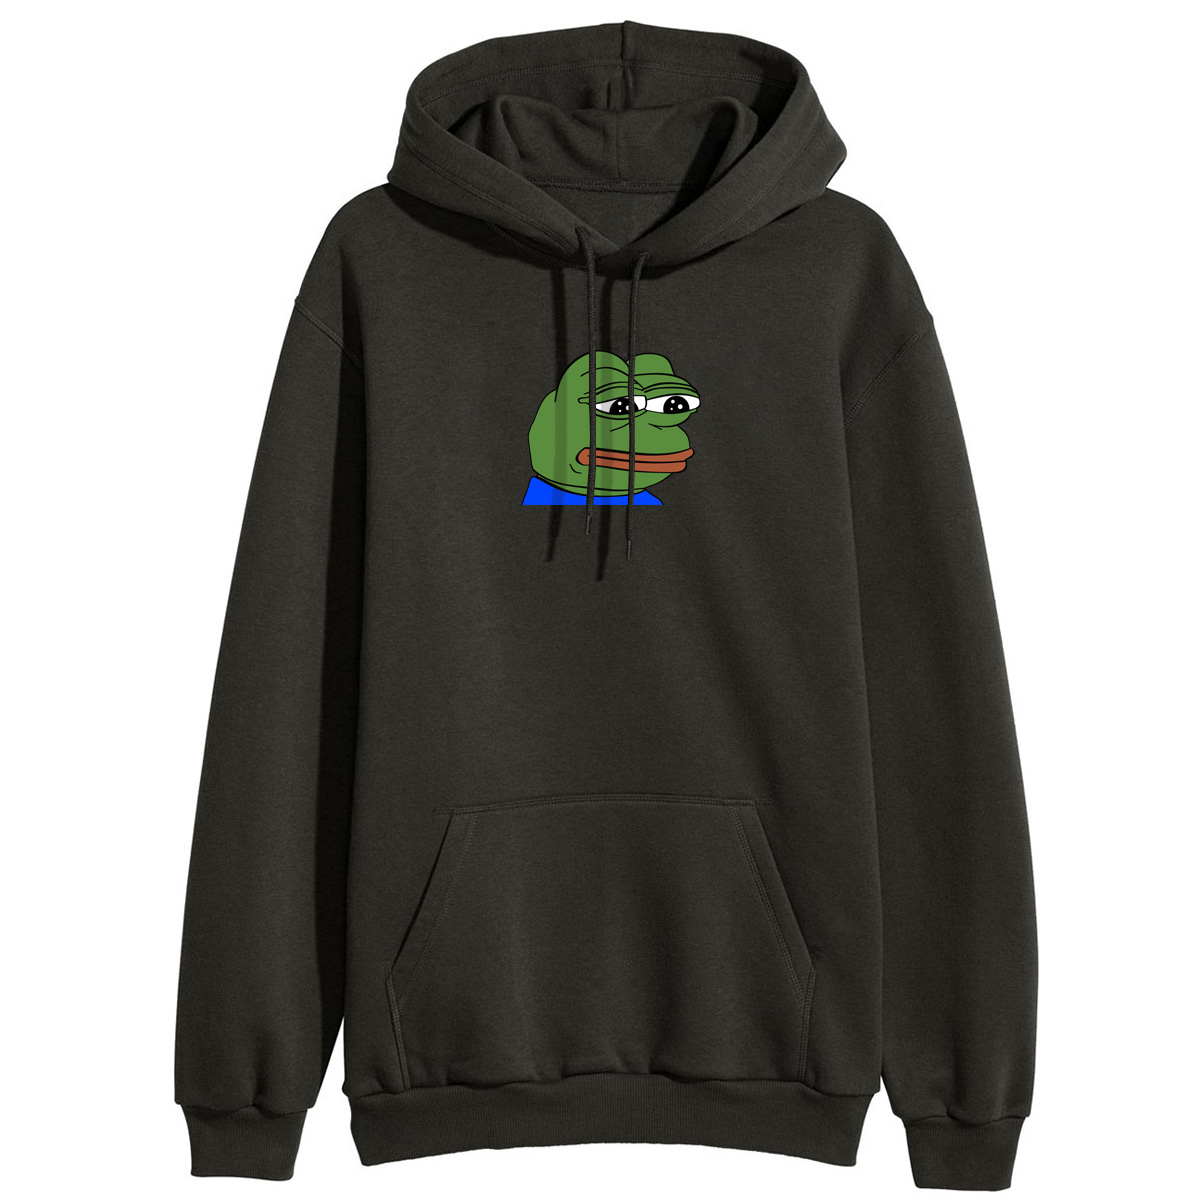 Women Sad Frog Print Sportswear Hoodies Female Kawaii Hip Hop Fleece Winter Hooded Sweatshirts Loose Fitness Hoody Pullovers